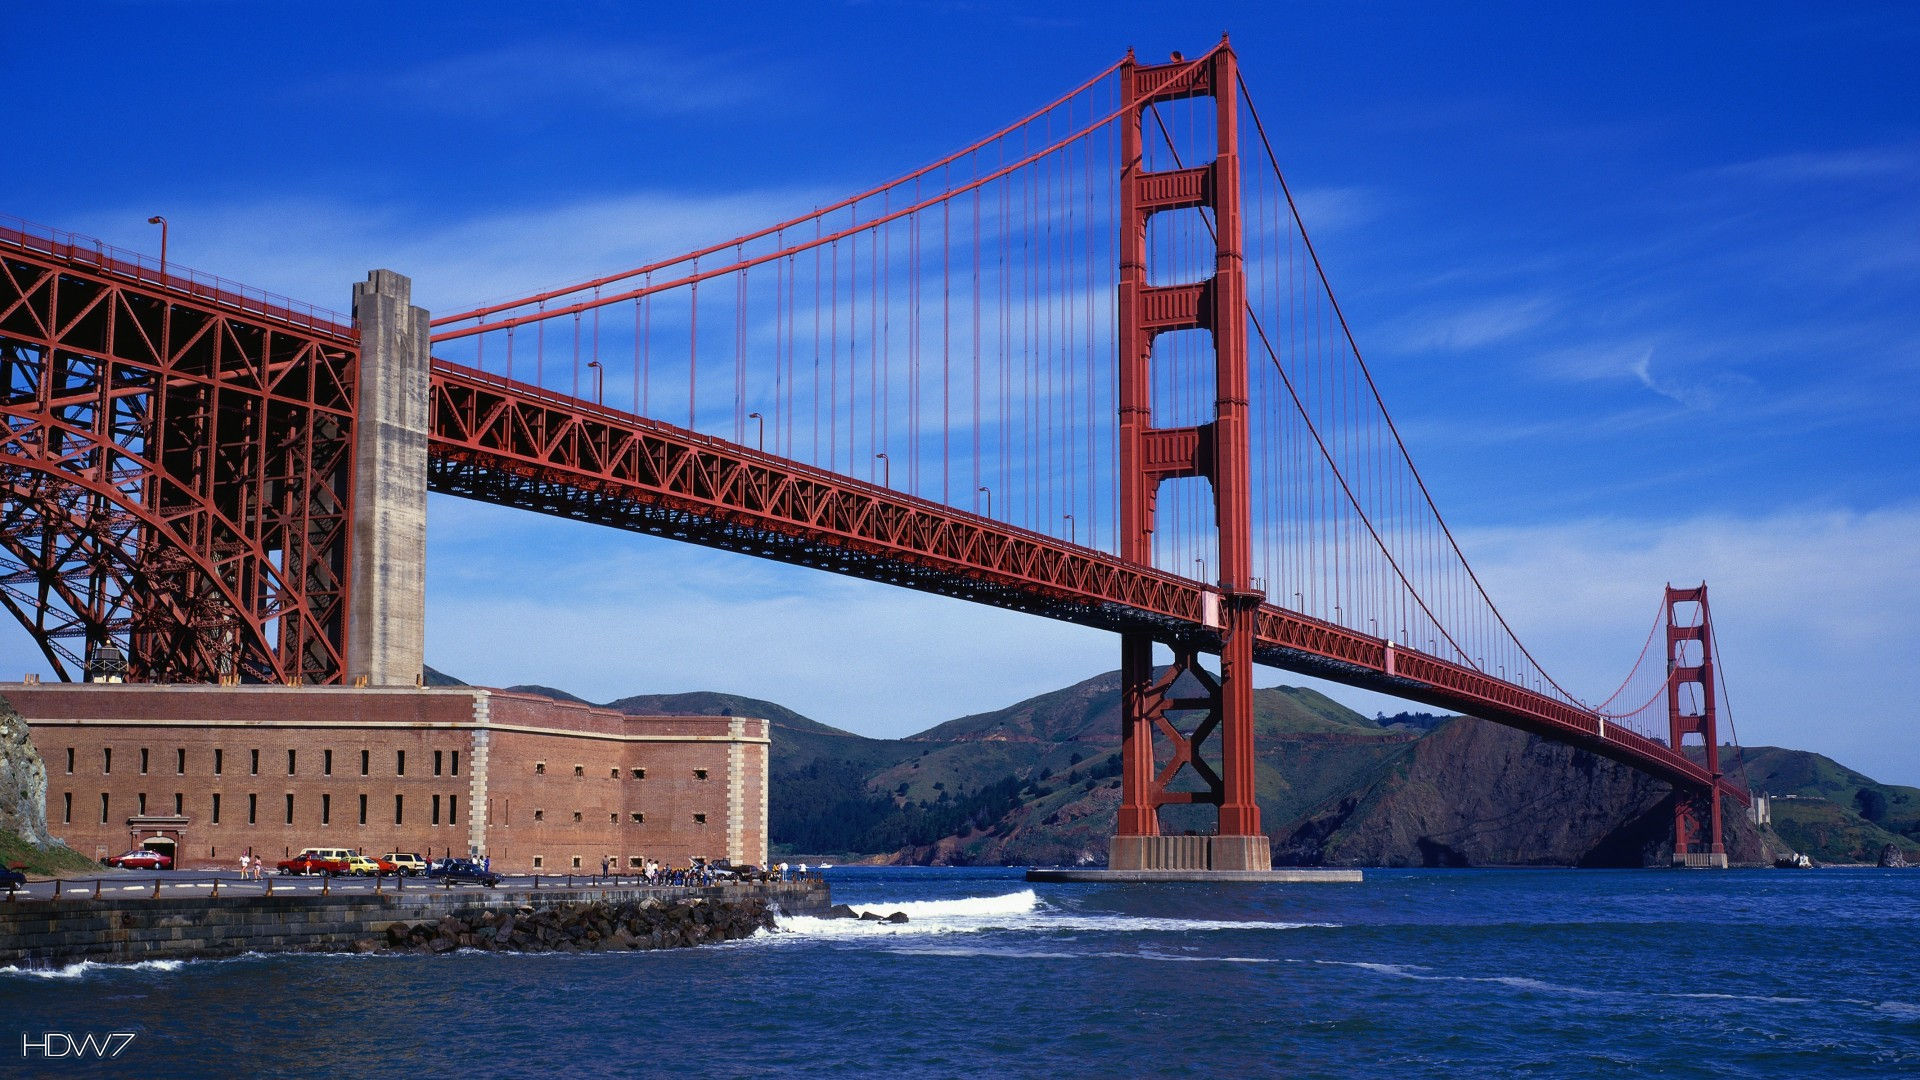 bridge san francisco panorama 1920x1080 HD wallpaper gallery 247 1920x1080